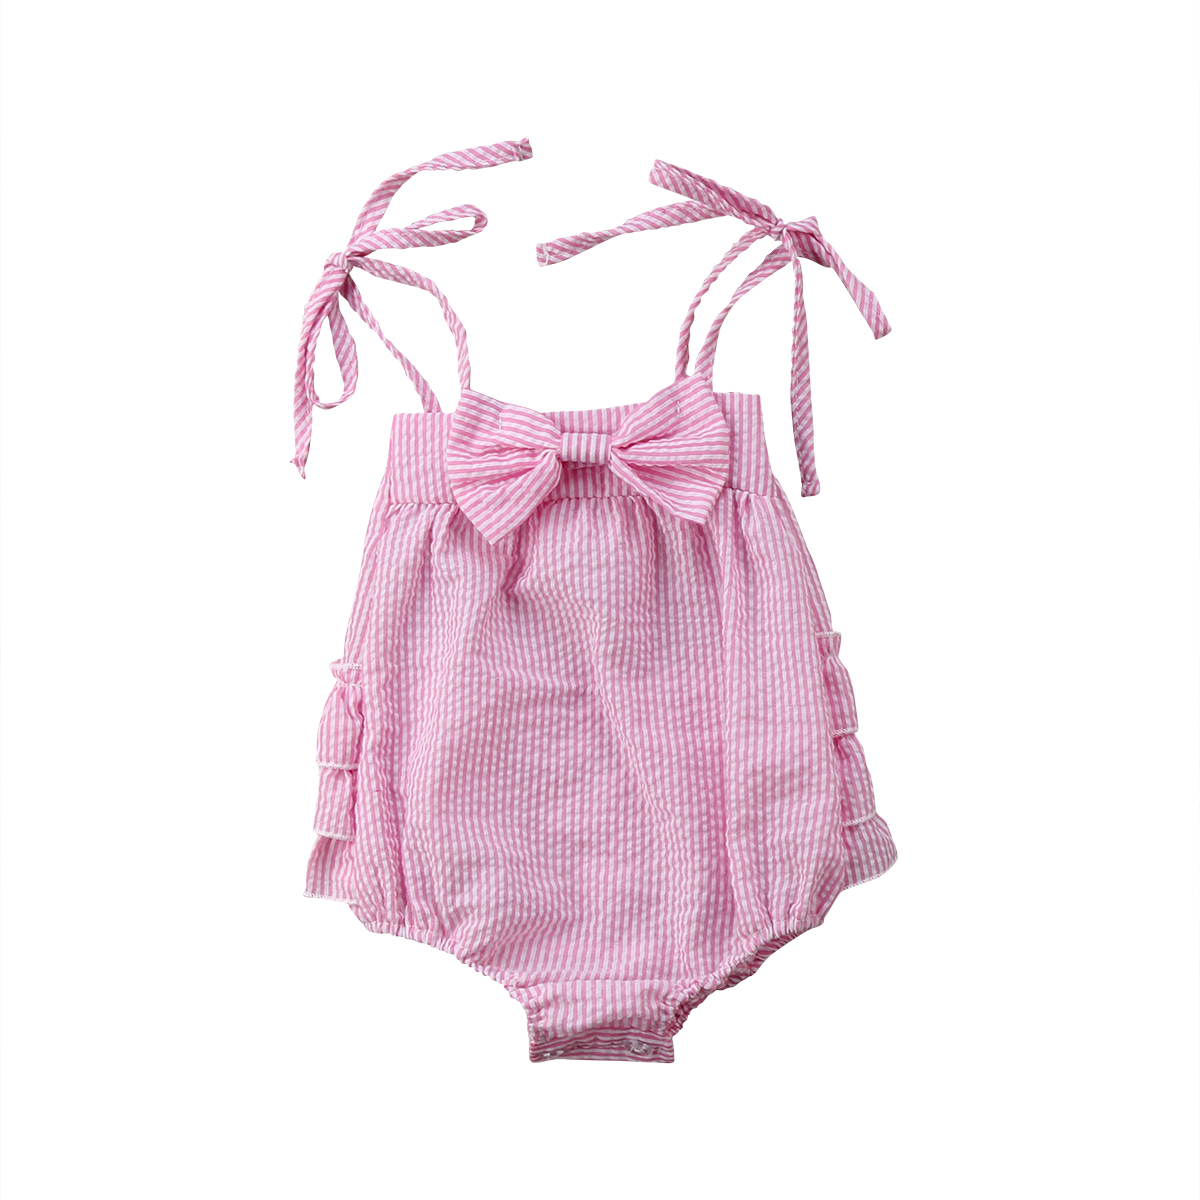 Newborn Toddler Infant Baby Girl   Romper   Off Shoulder Bow Jumpsuit Outfit Sunsuit Clothes Baby Clothing